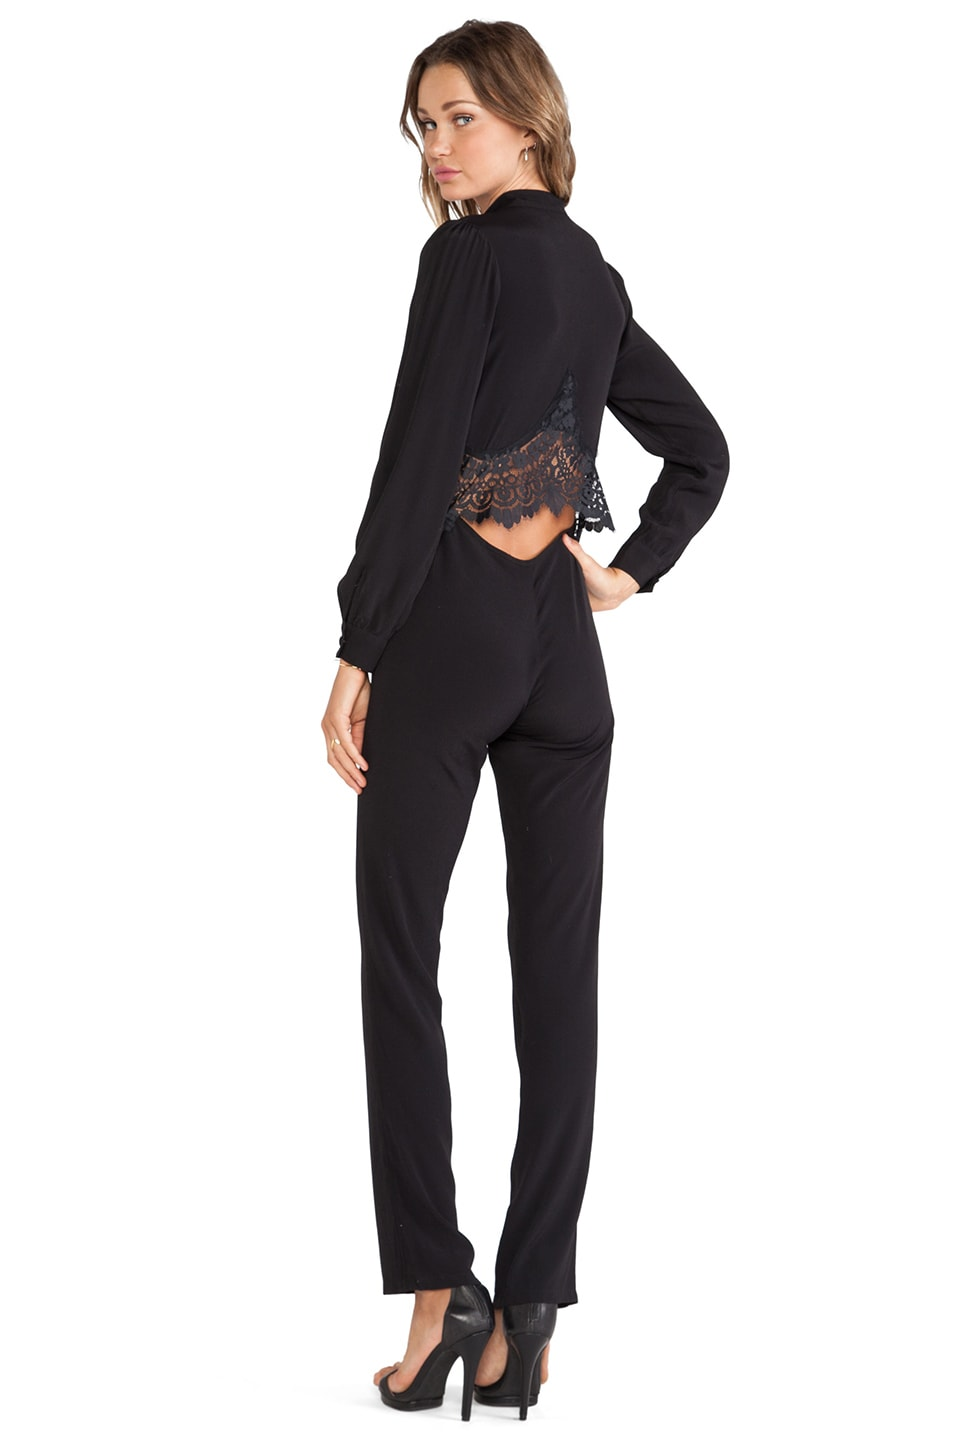 For Love & Lemons Bourbon Jumpsuit in Black